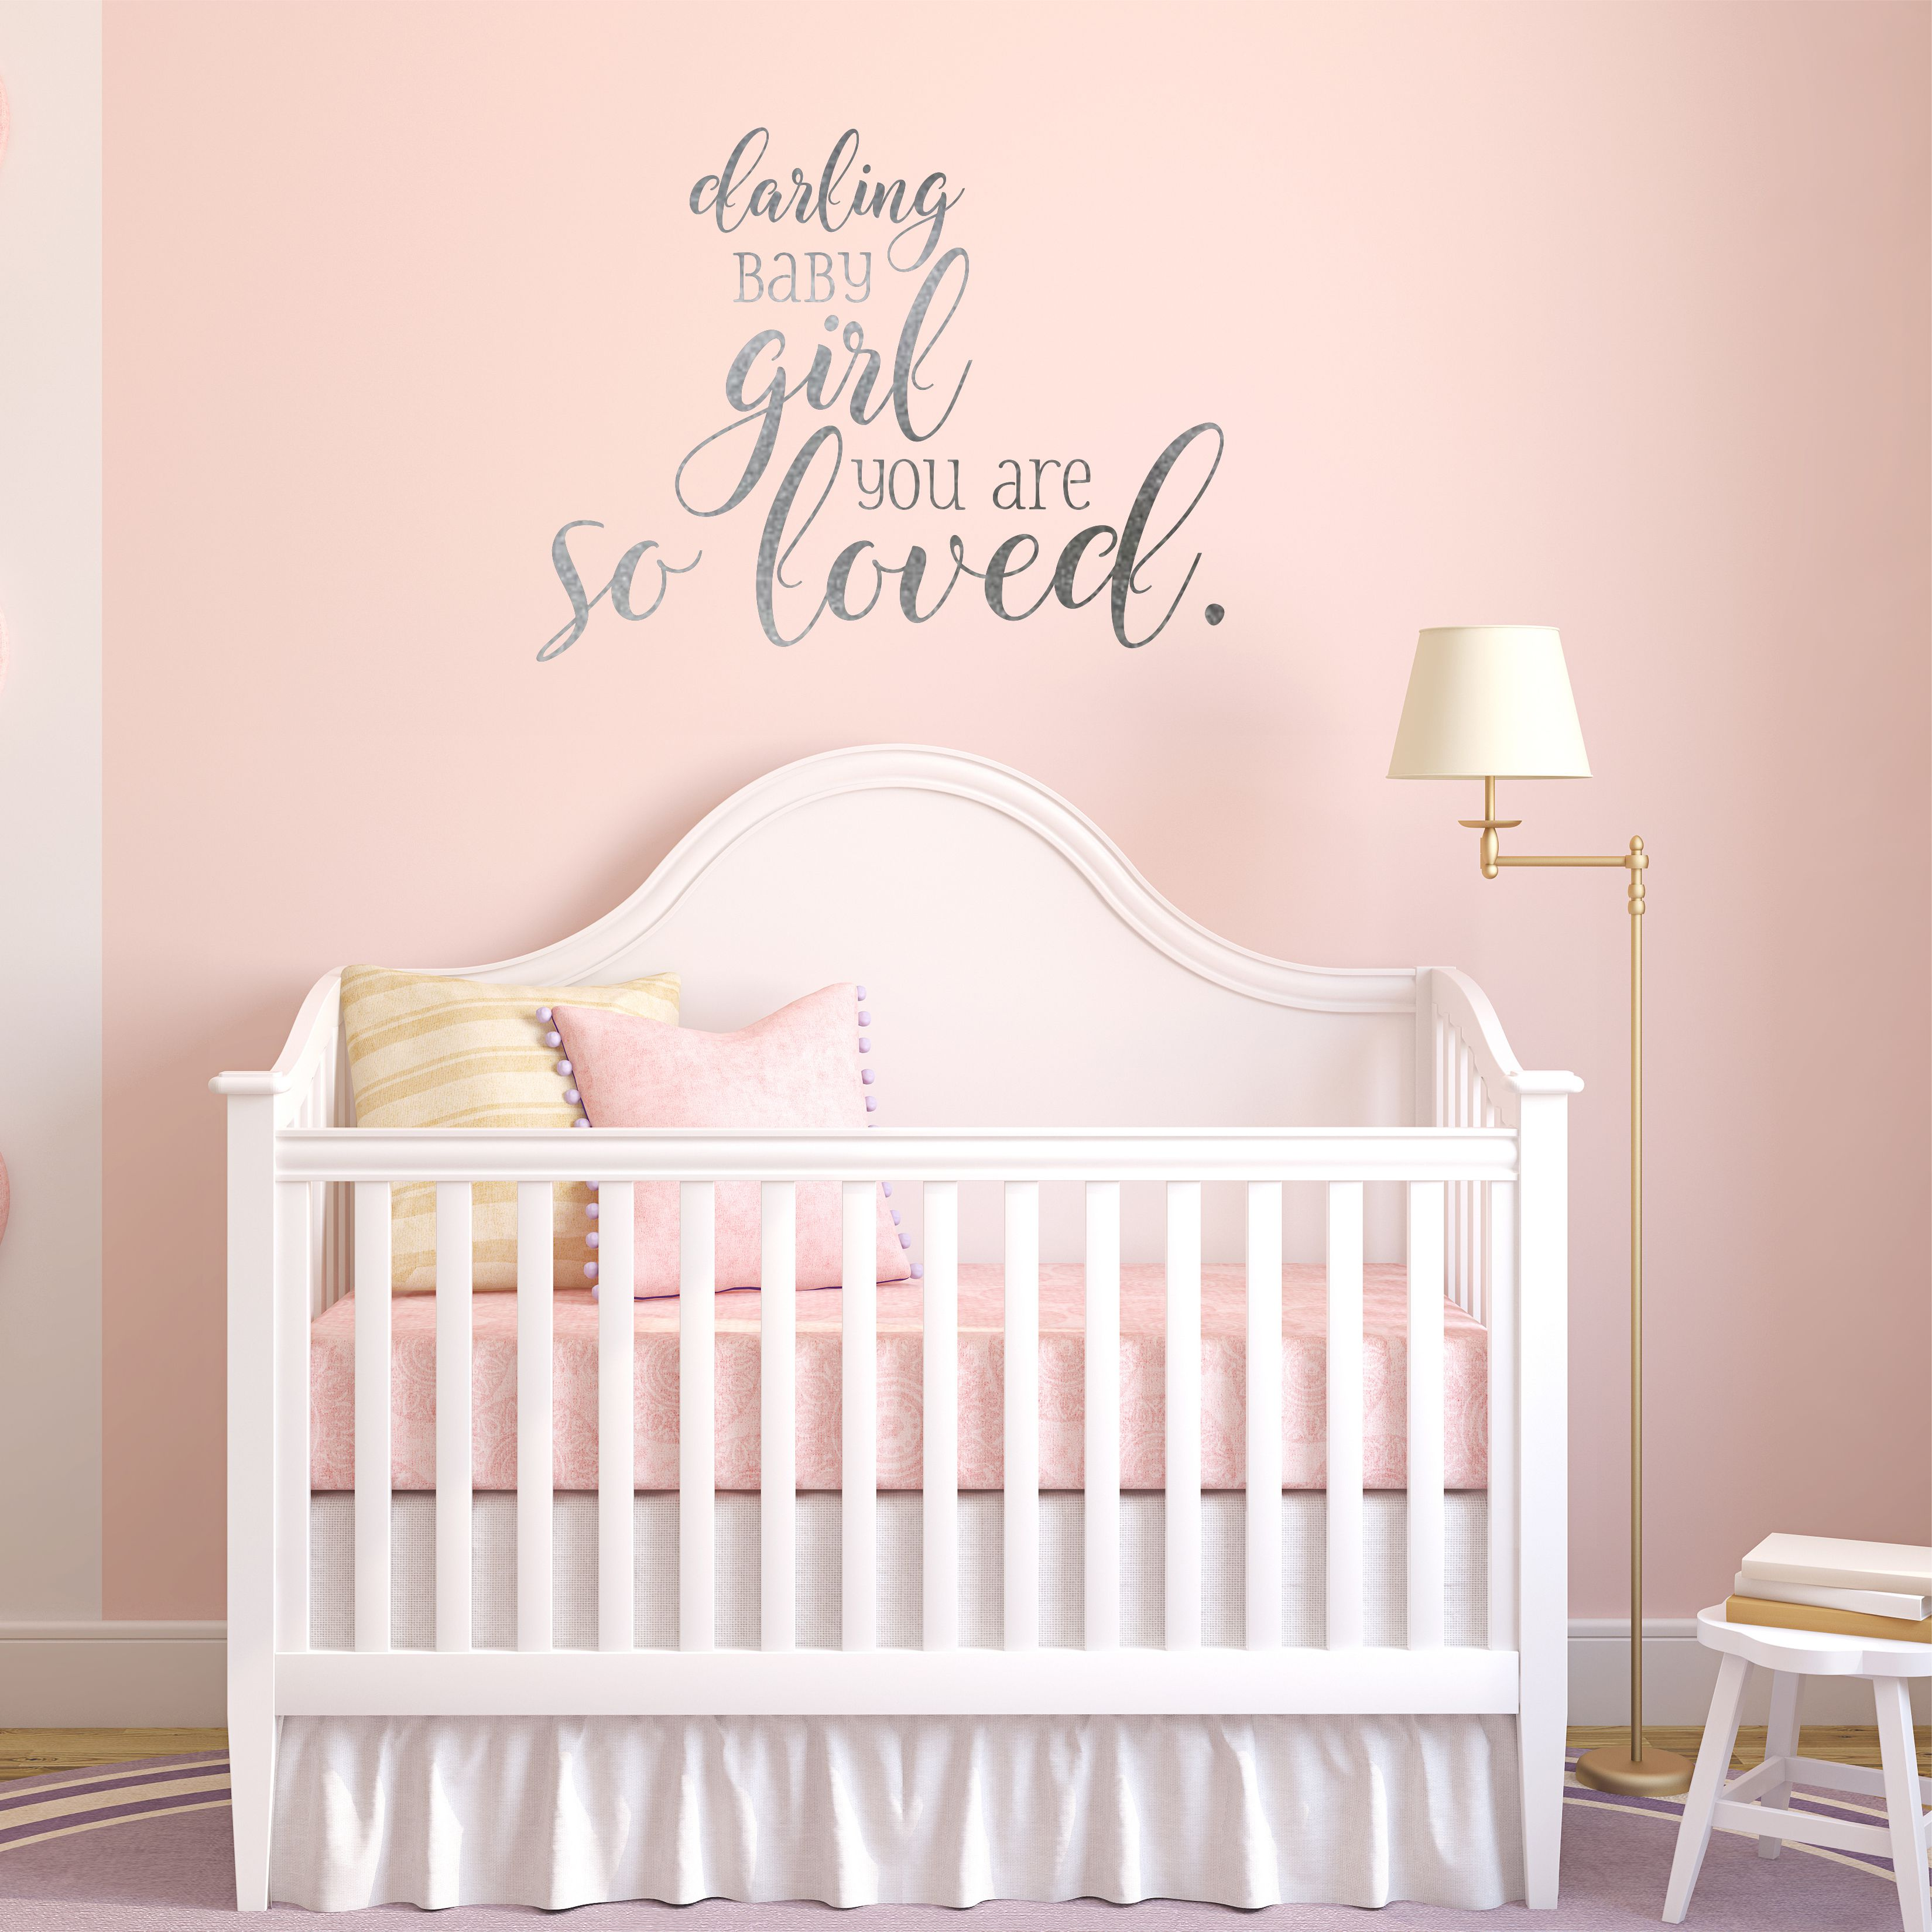 Darling Baby Girl Nursery Wall Decal - A Great Impression